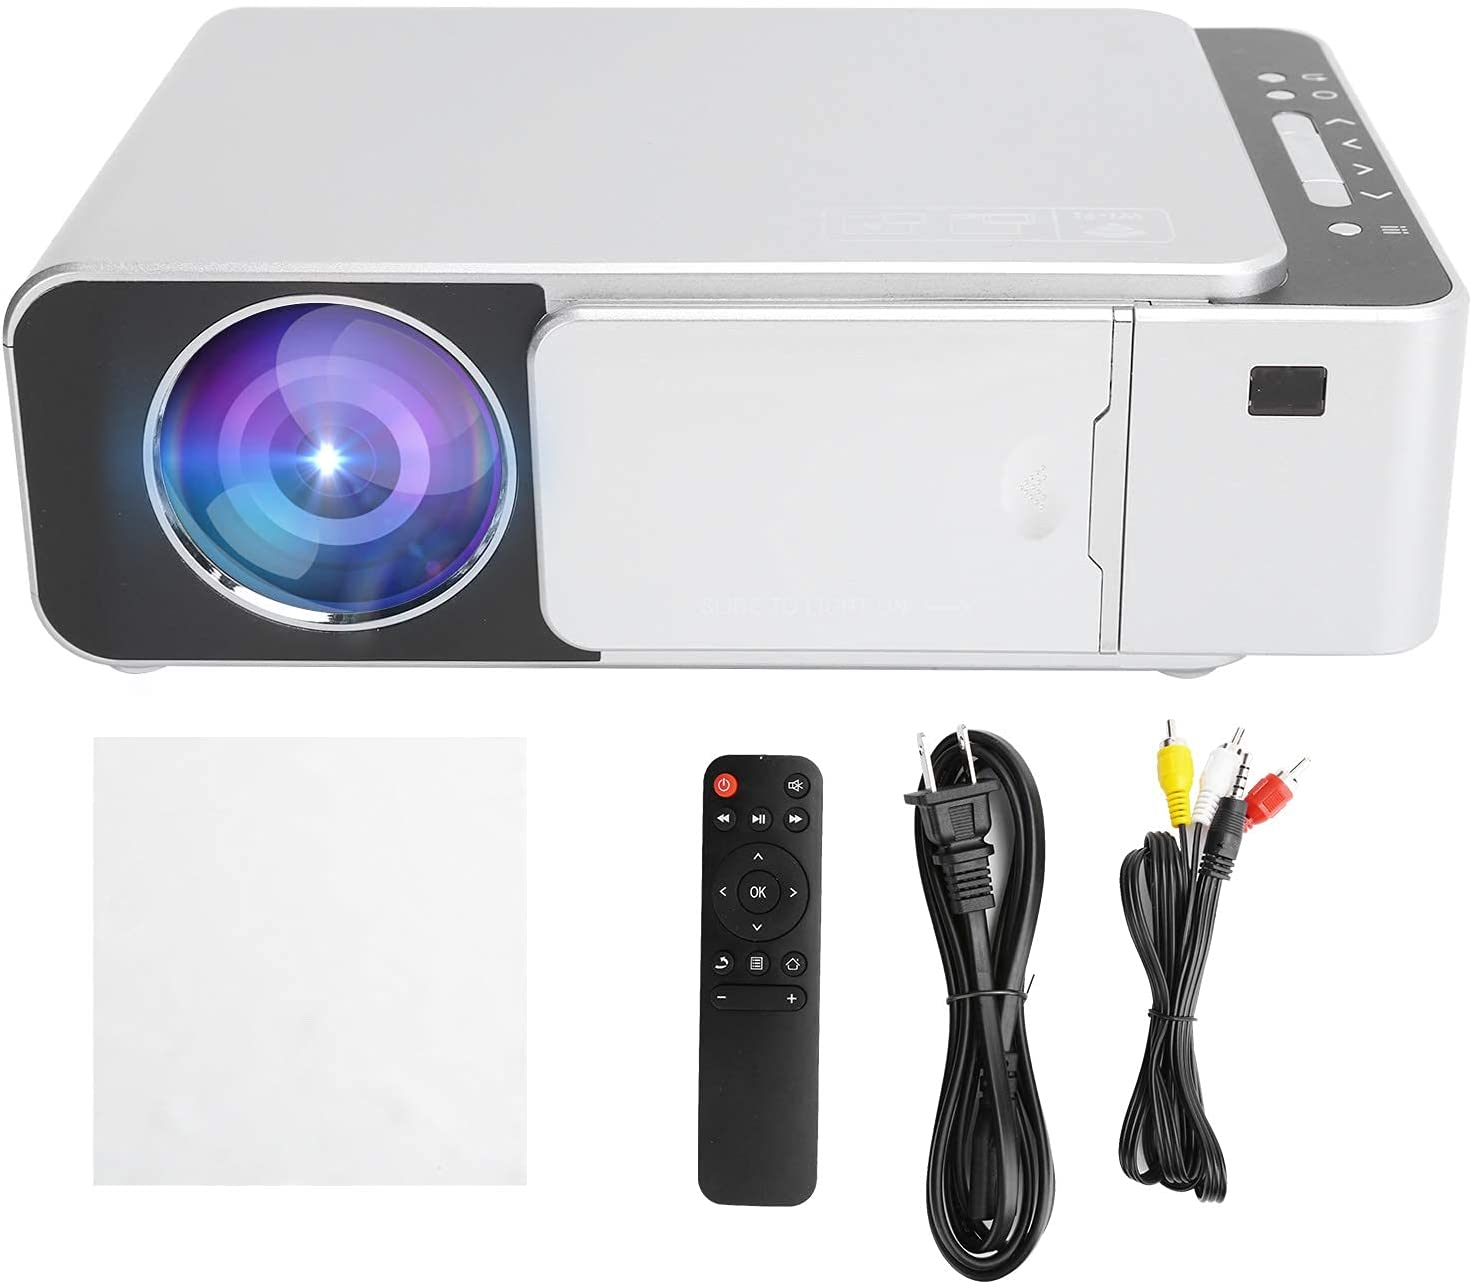 Wisoqu Projector,55W 100‑240V Same Screen Projection Equipment Portable Home Theater HD 1080P Projector,Compatible with Mobile Phones Tablets Laptops and Other Devices(White)